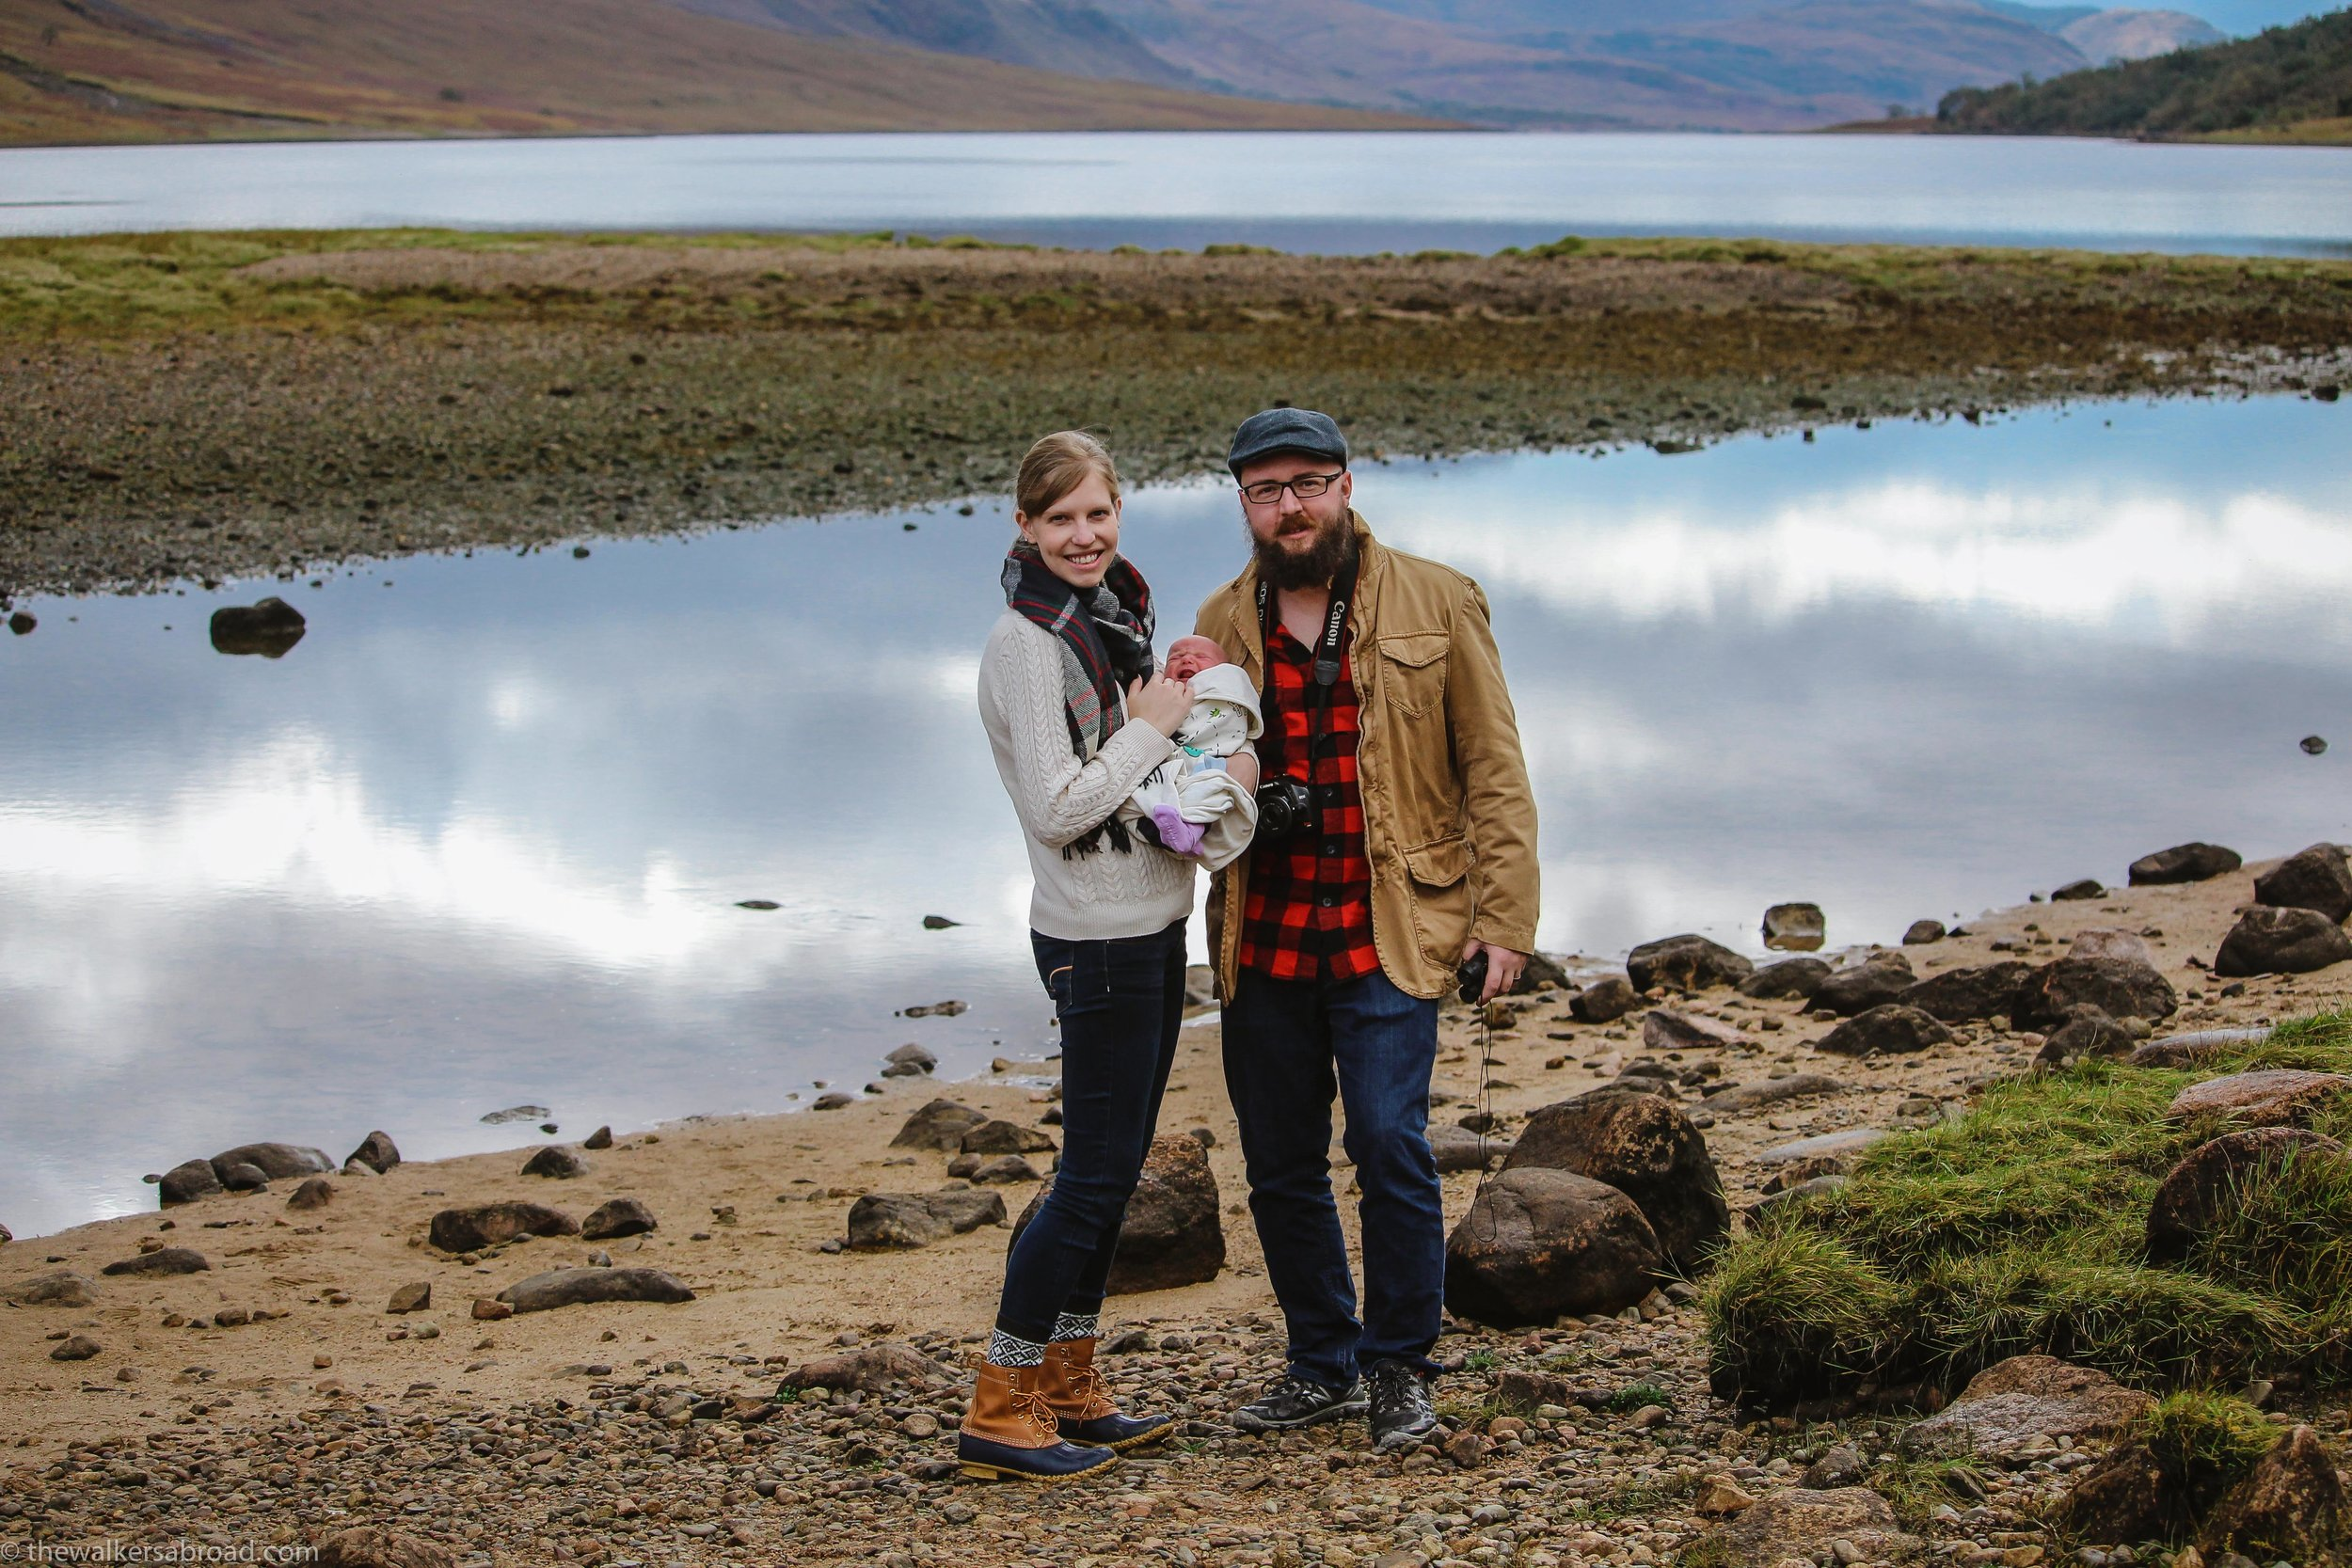 Our little family on Loch Etive. Photo credit: Stephanie Dill